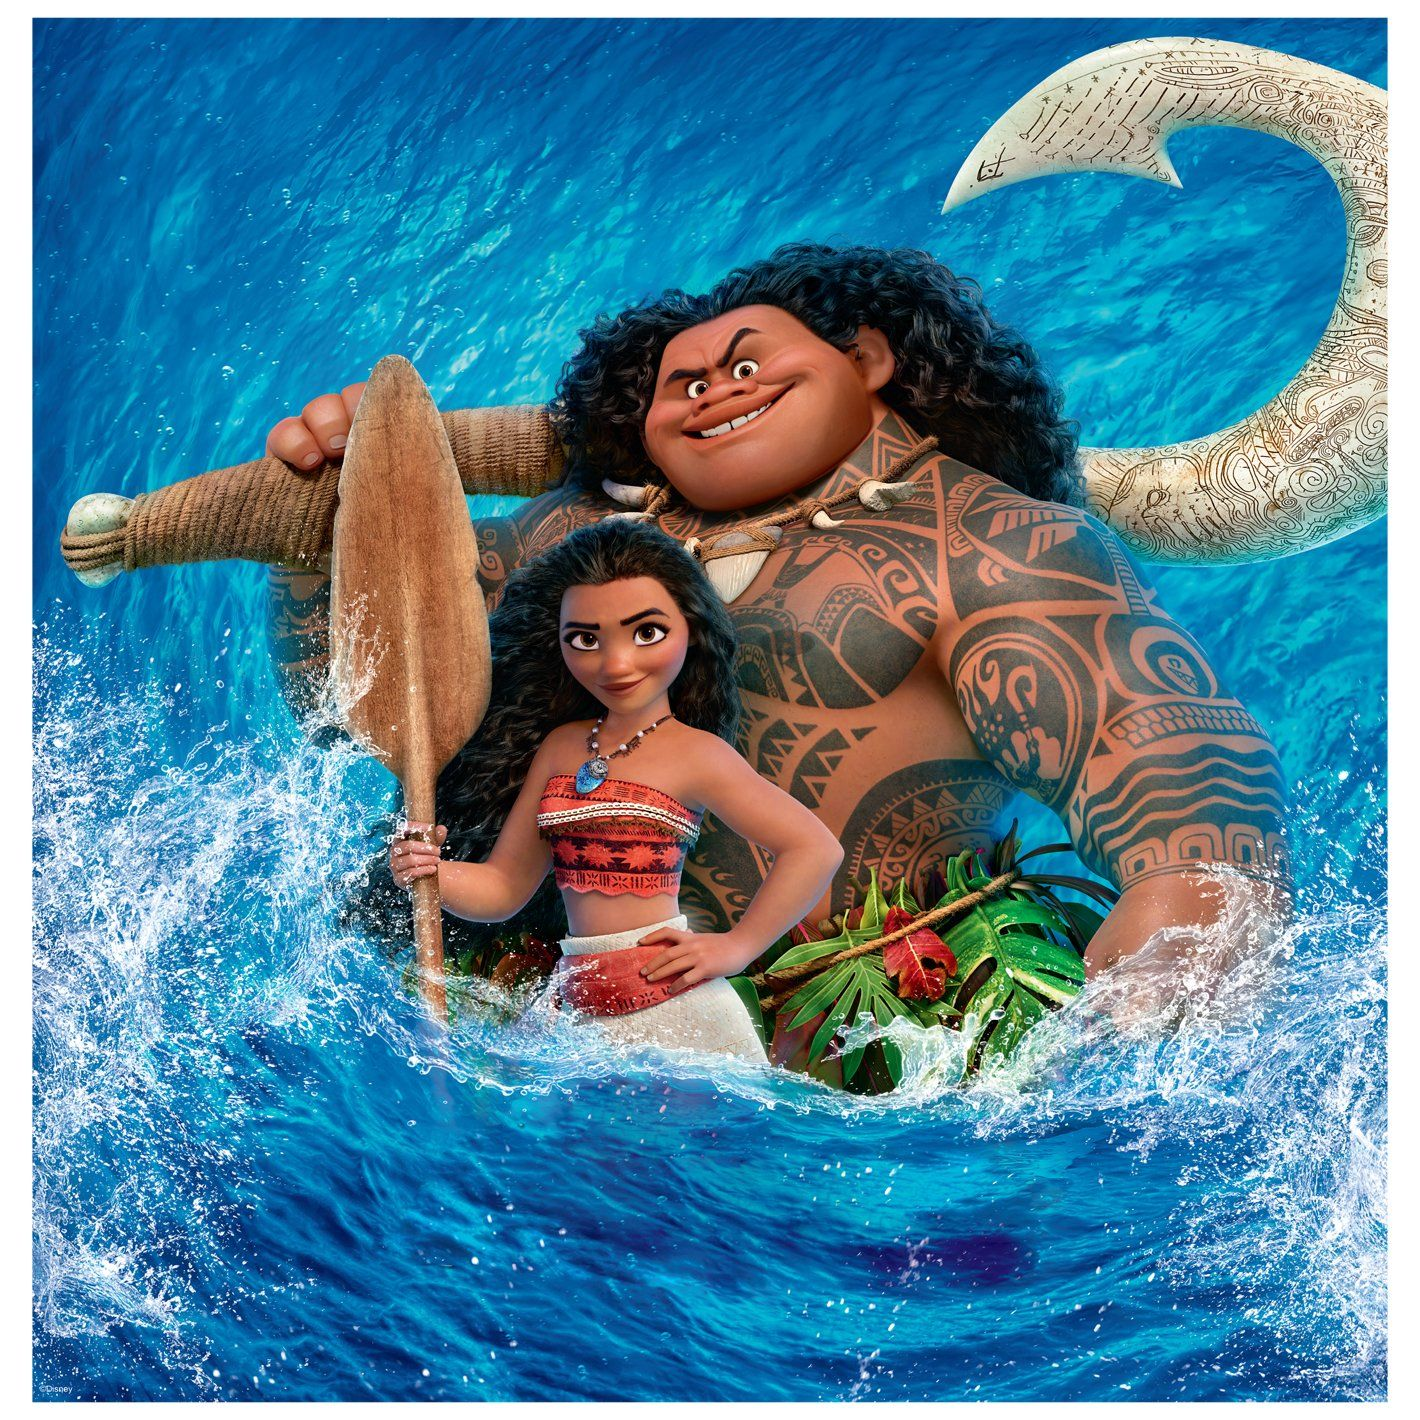 Moana: Splash Mural - Officially Licensed Disney Removable Wall Adhesive Decal Giant (39.5